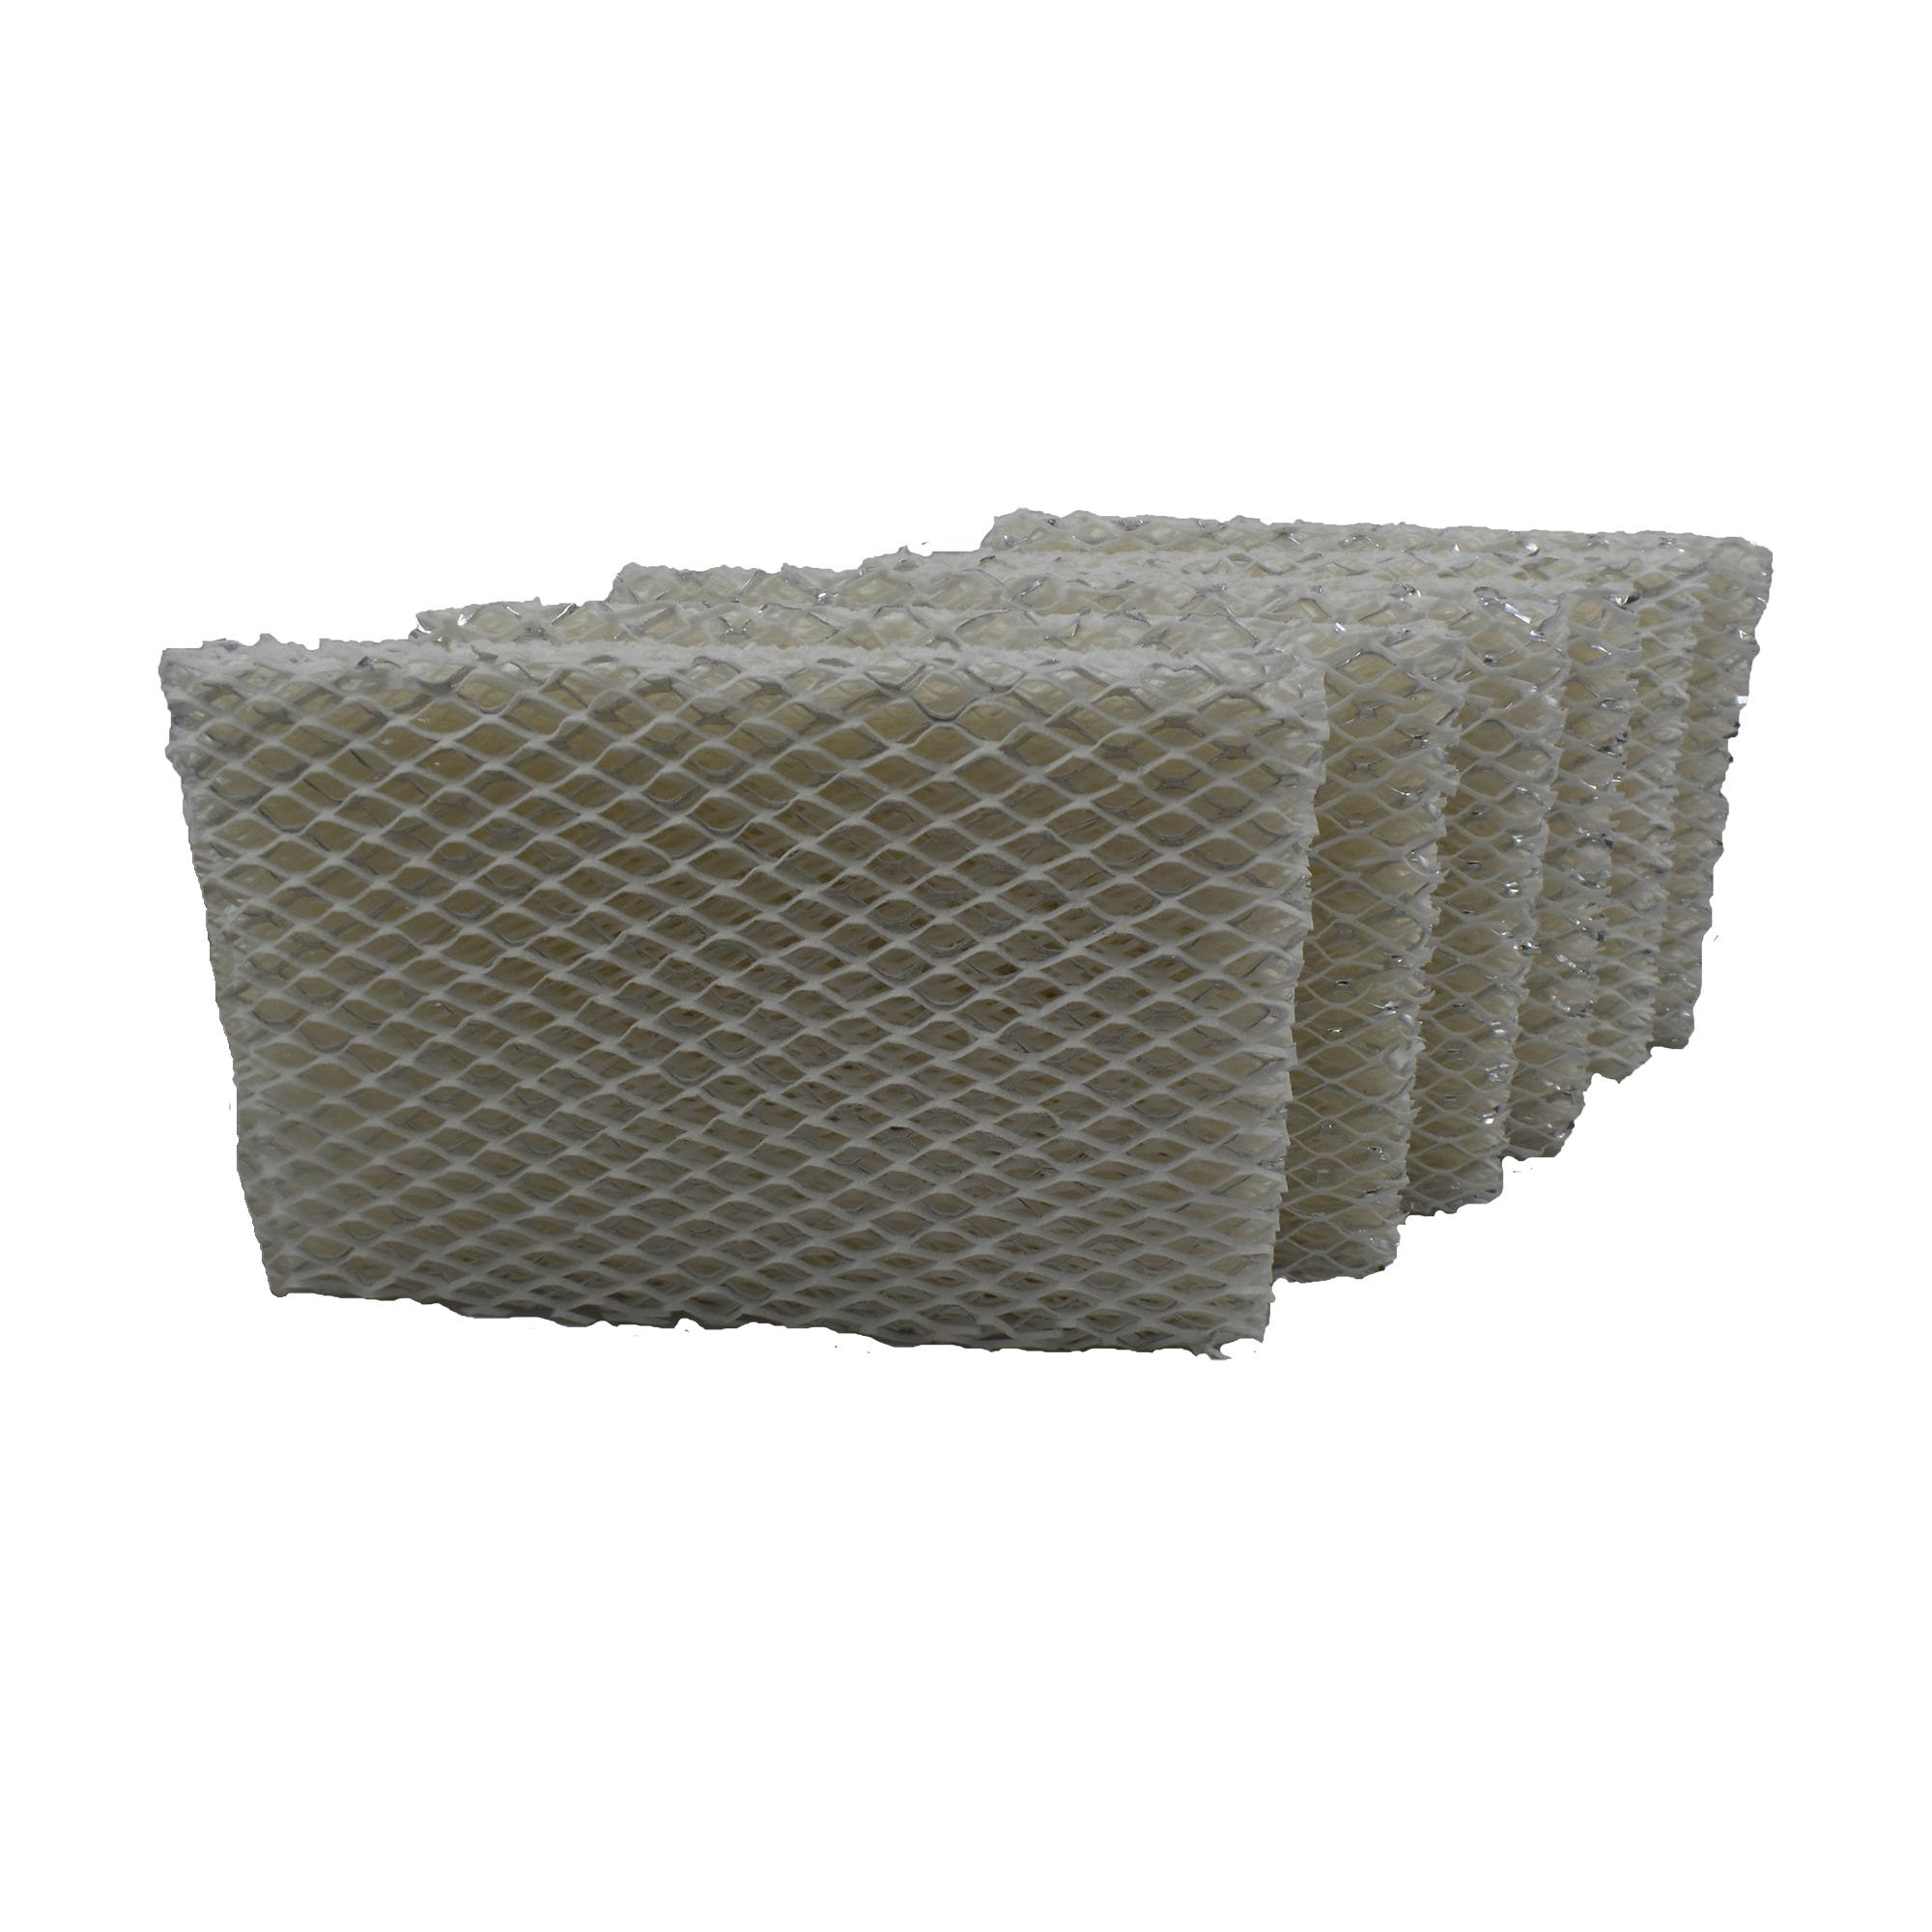 Air Filter Factory 6 PACK Compatible Replacement For Bionaire BCM7305RC, BCM7305RCB, BCM7308, MCM5520, BWF100 Humidifier Filter